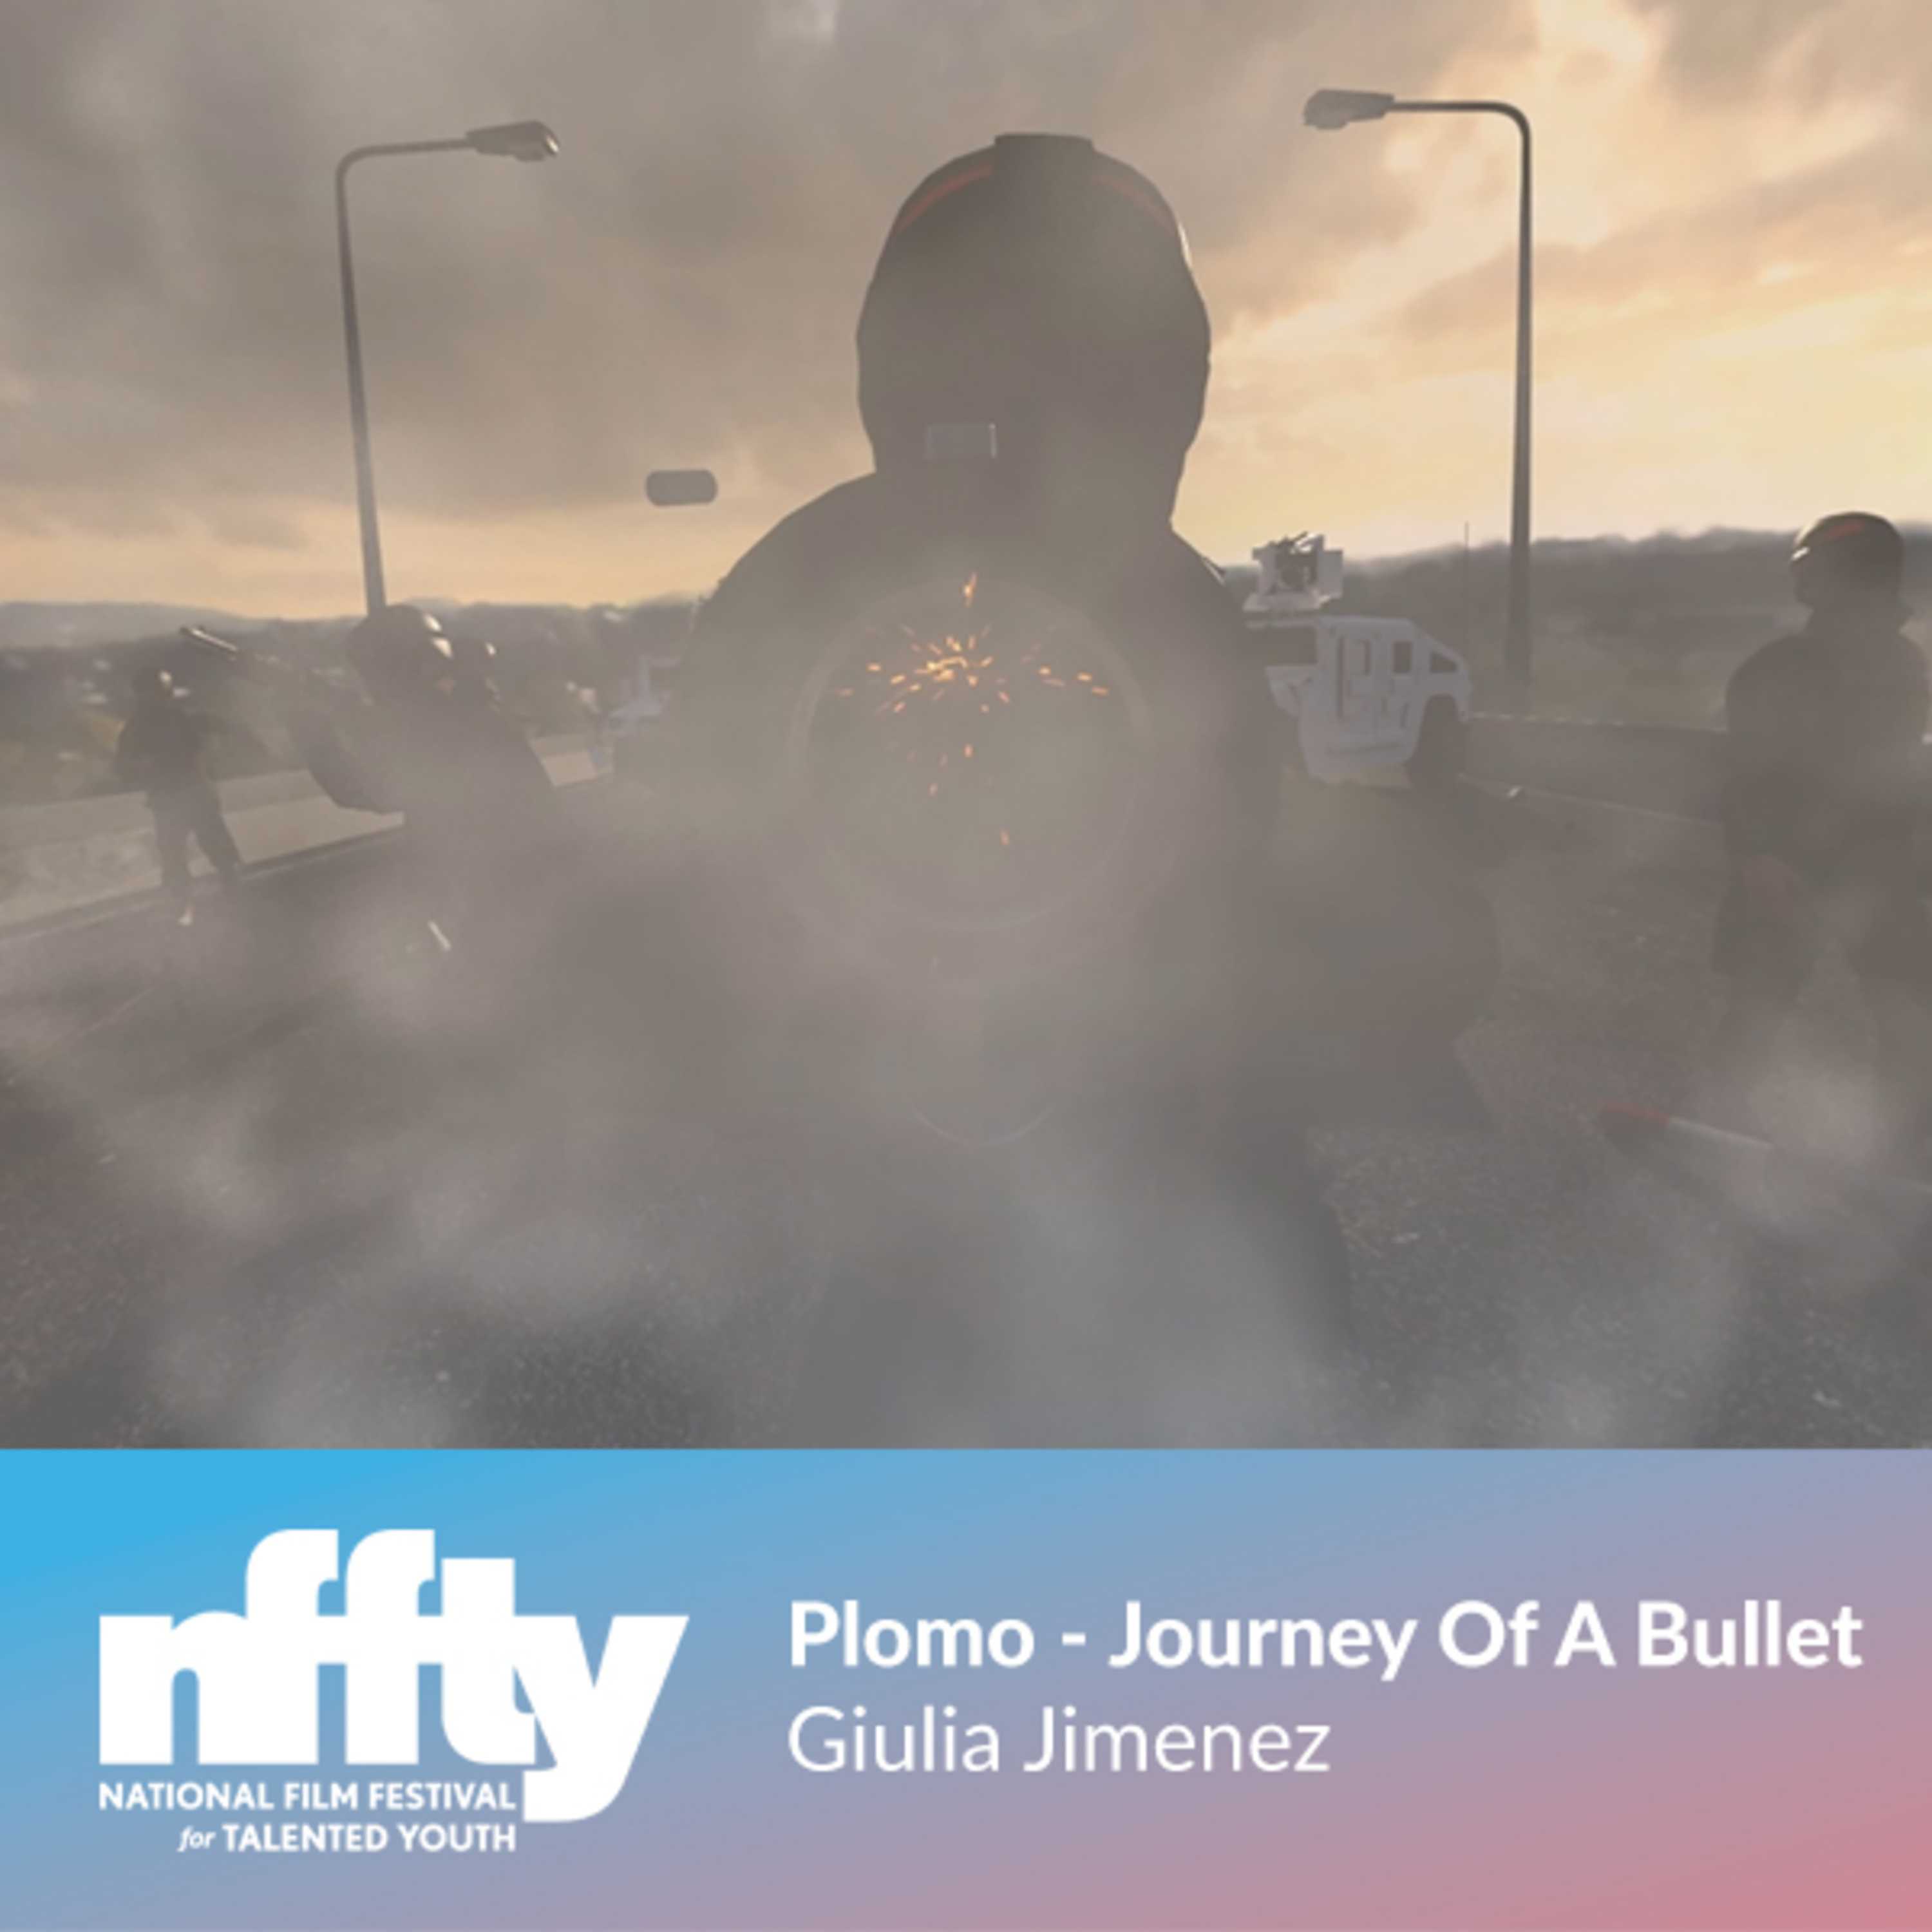 141: Plomo - Journey Of A Bullet